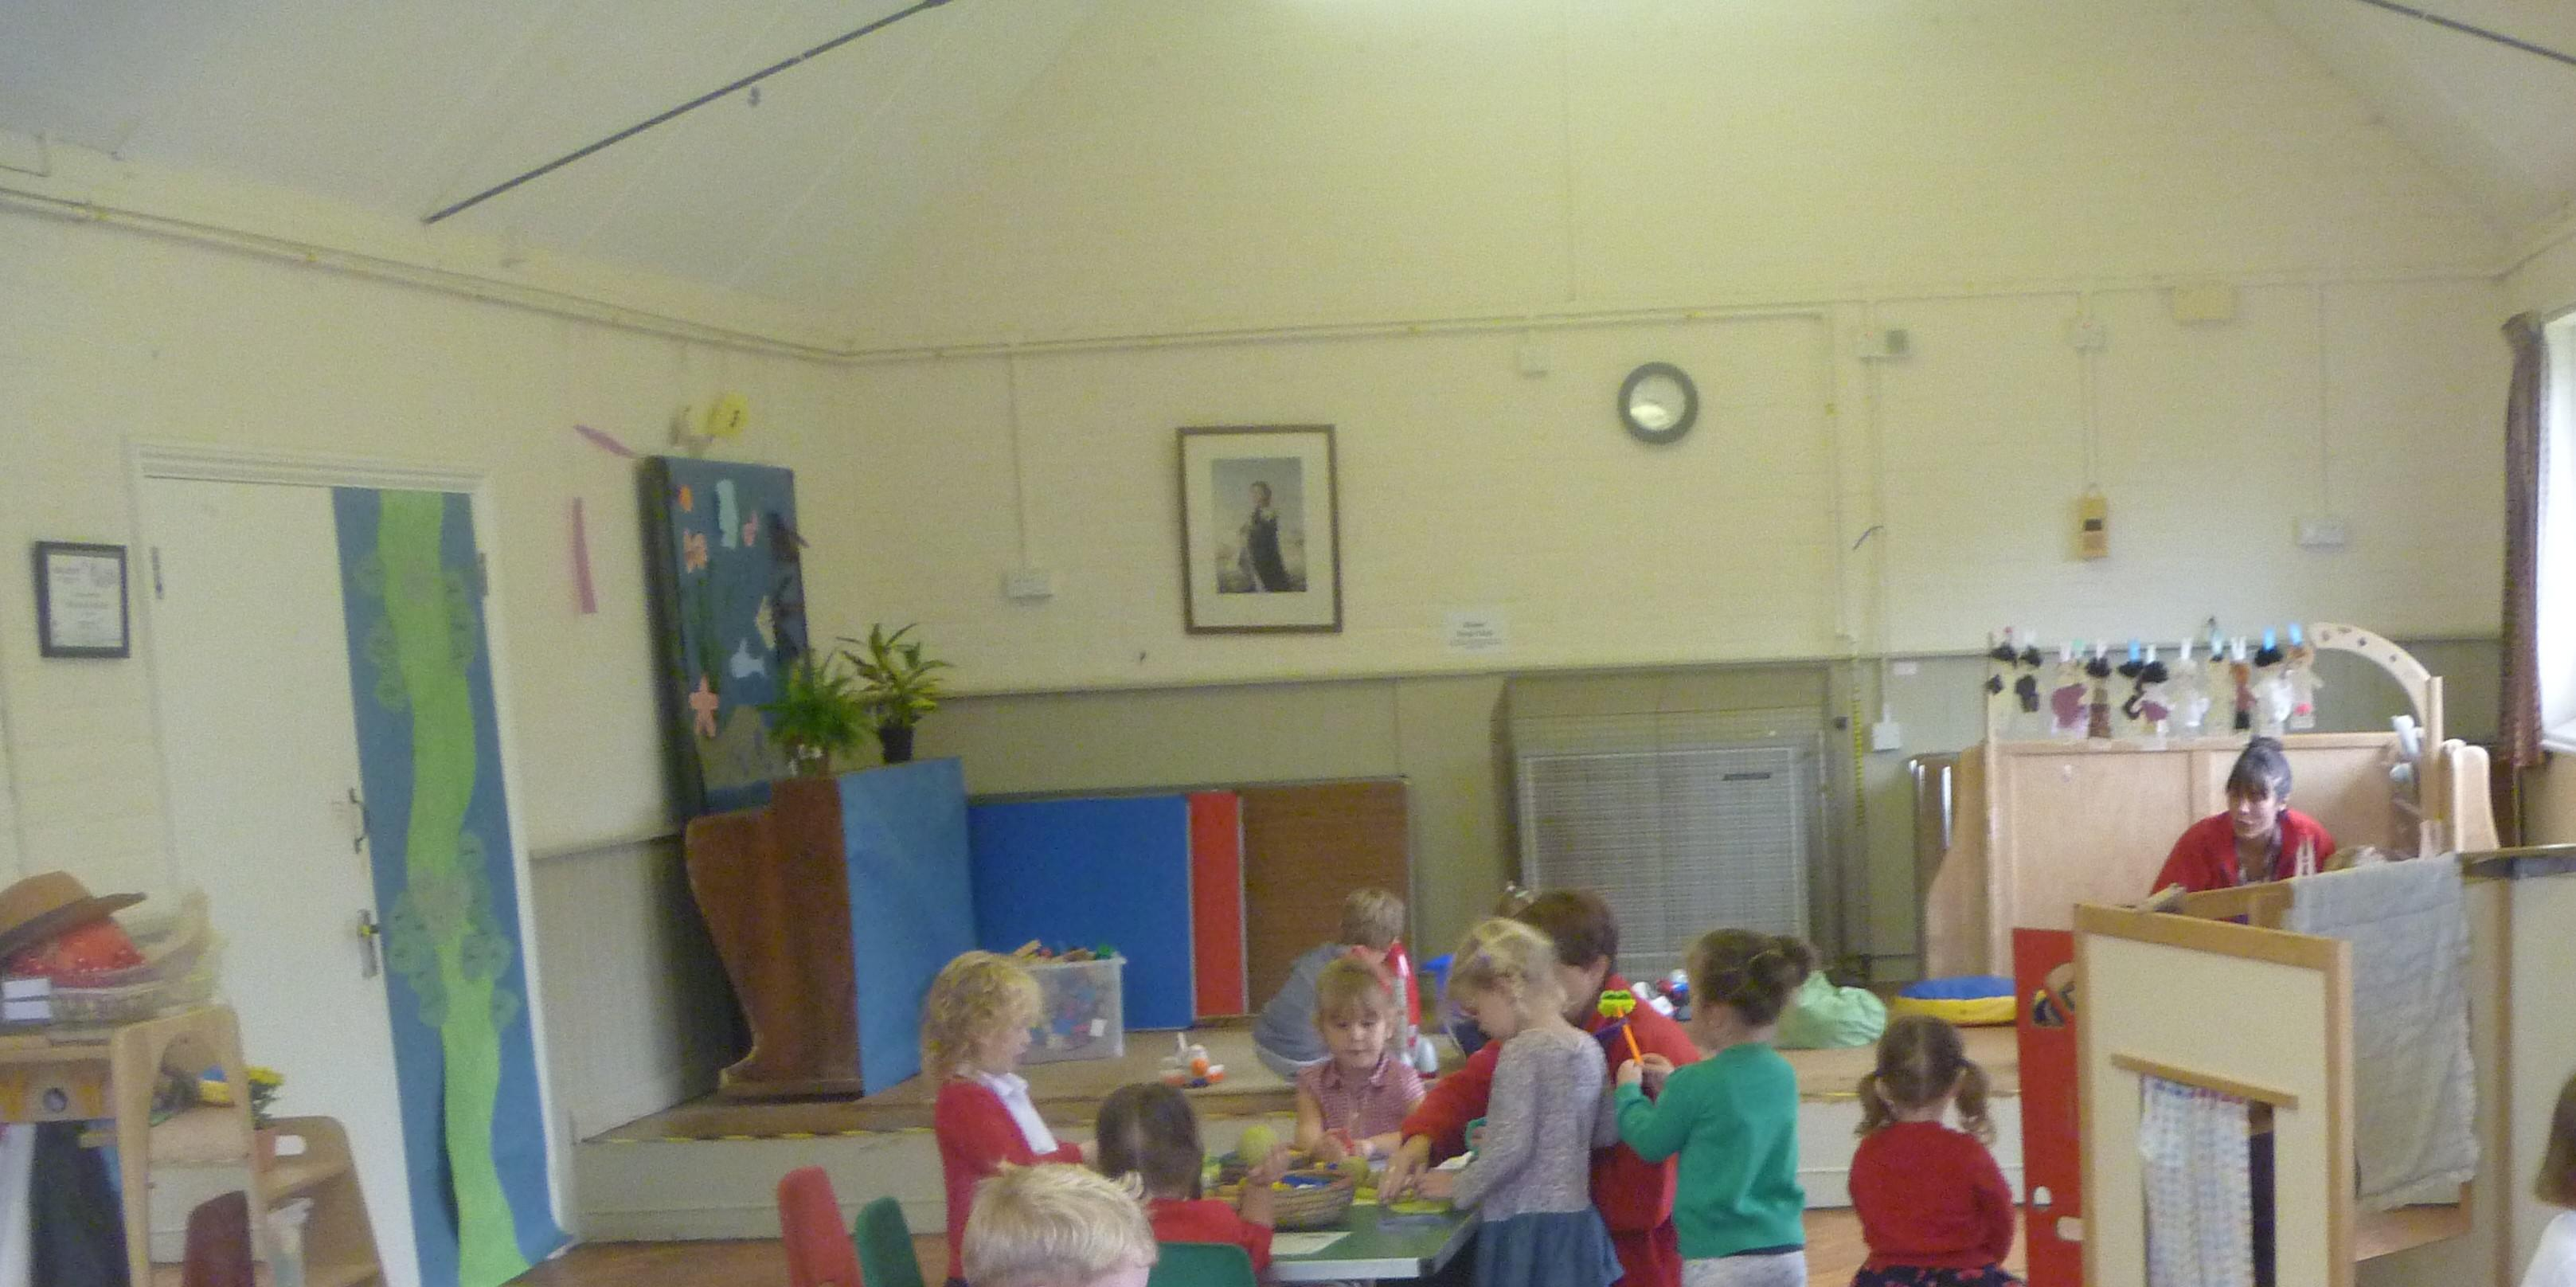 Staff And Their Rs So They Are Independent Behave Well Resources Used Children Initiate Own Activities